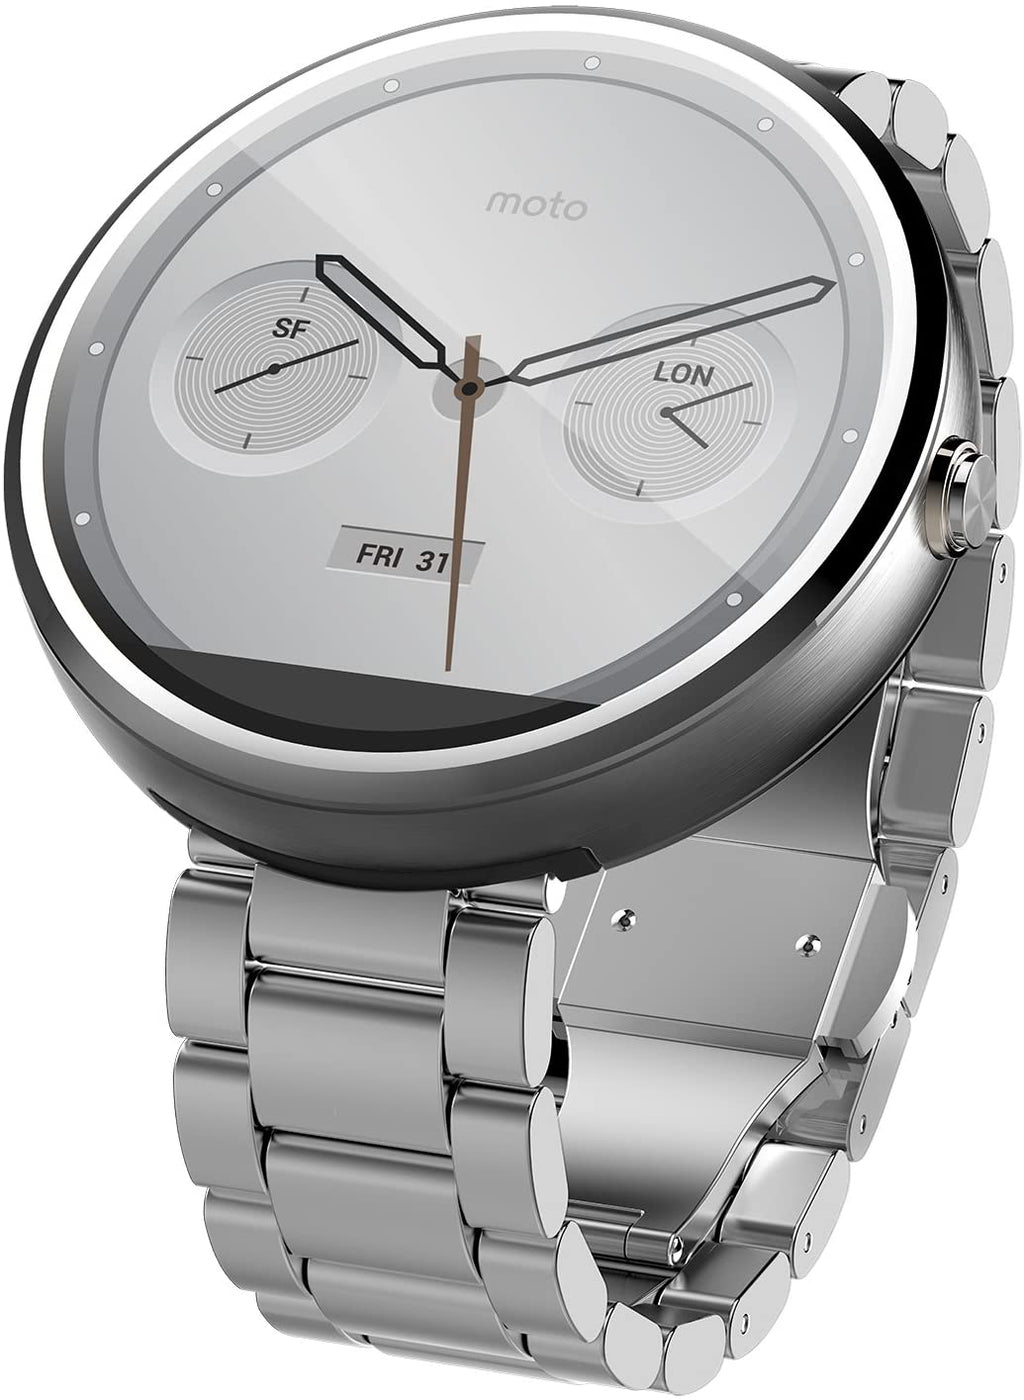 Motorola Moto 360 Smartwatch for Android - Stainless Steel